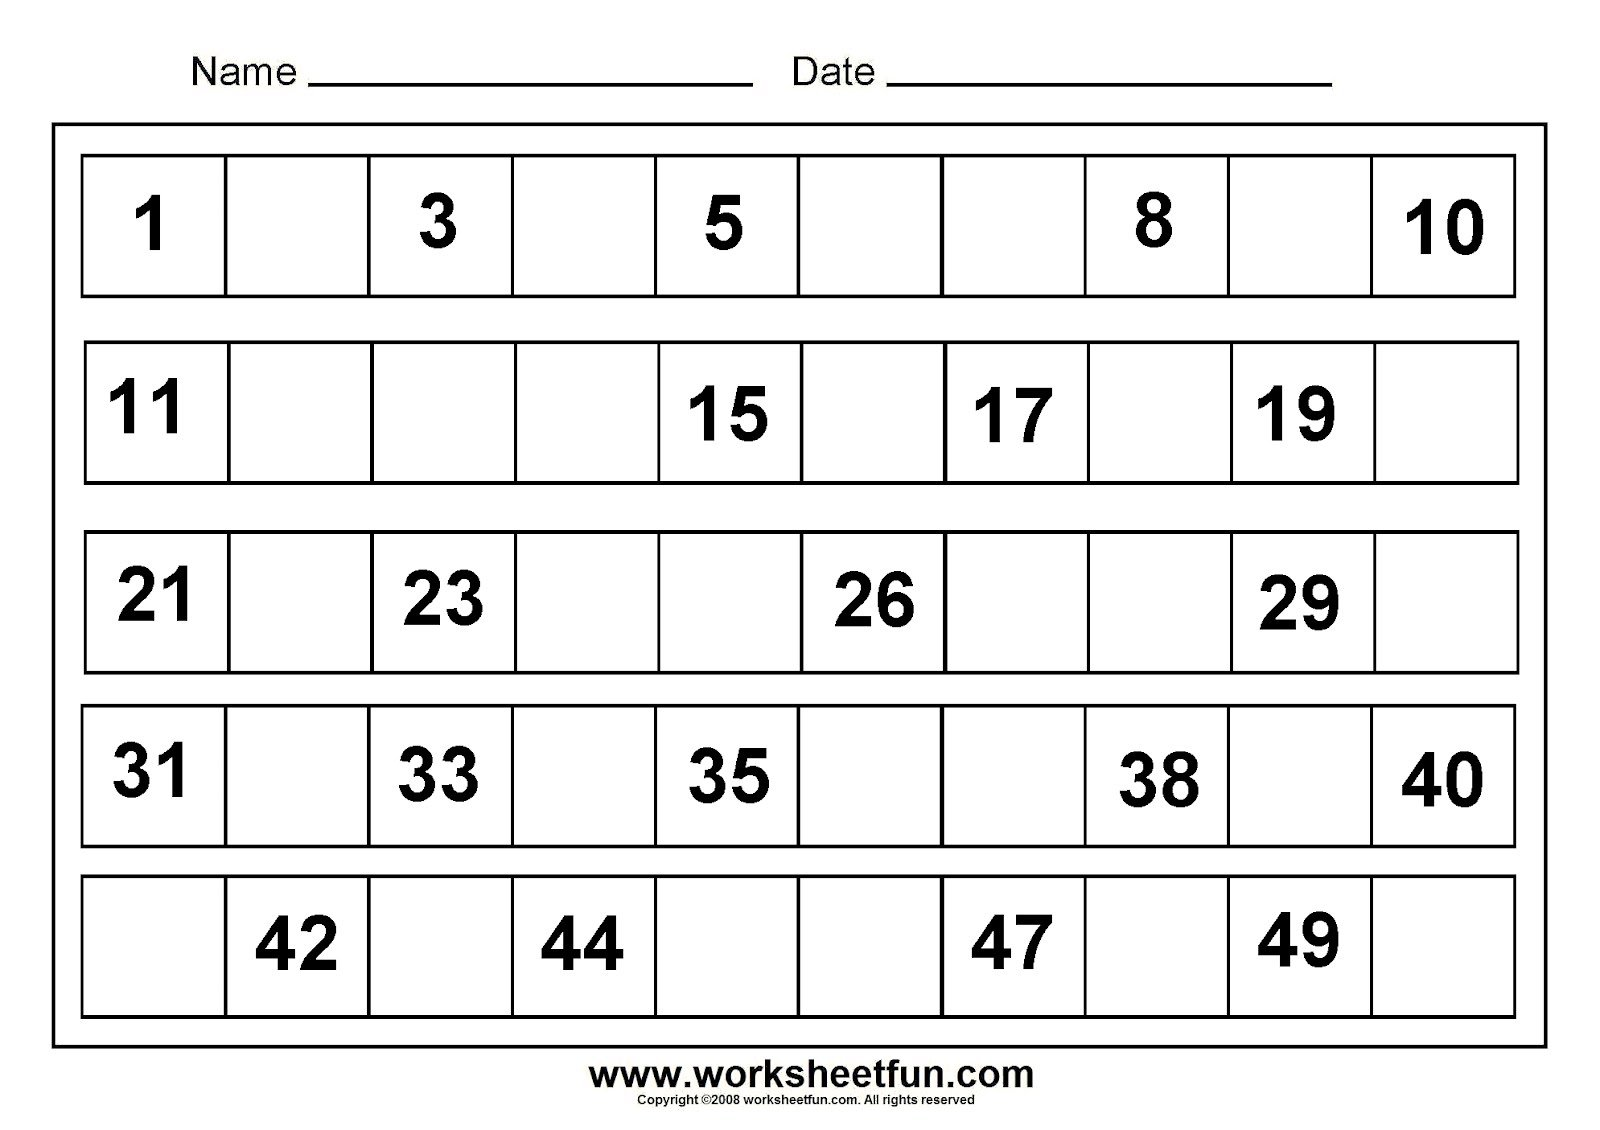 Worksheet For Kindergarten Math The Best Worksheets Image